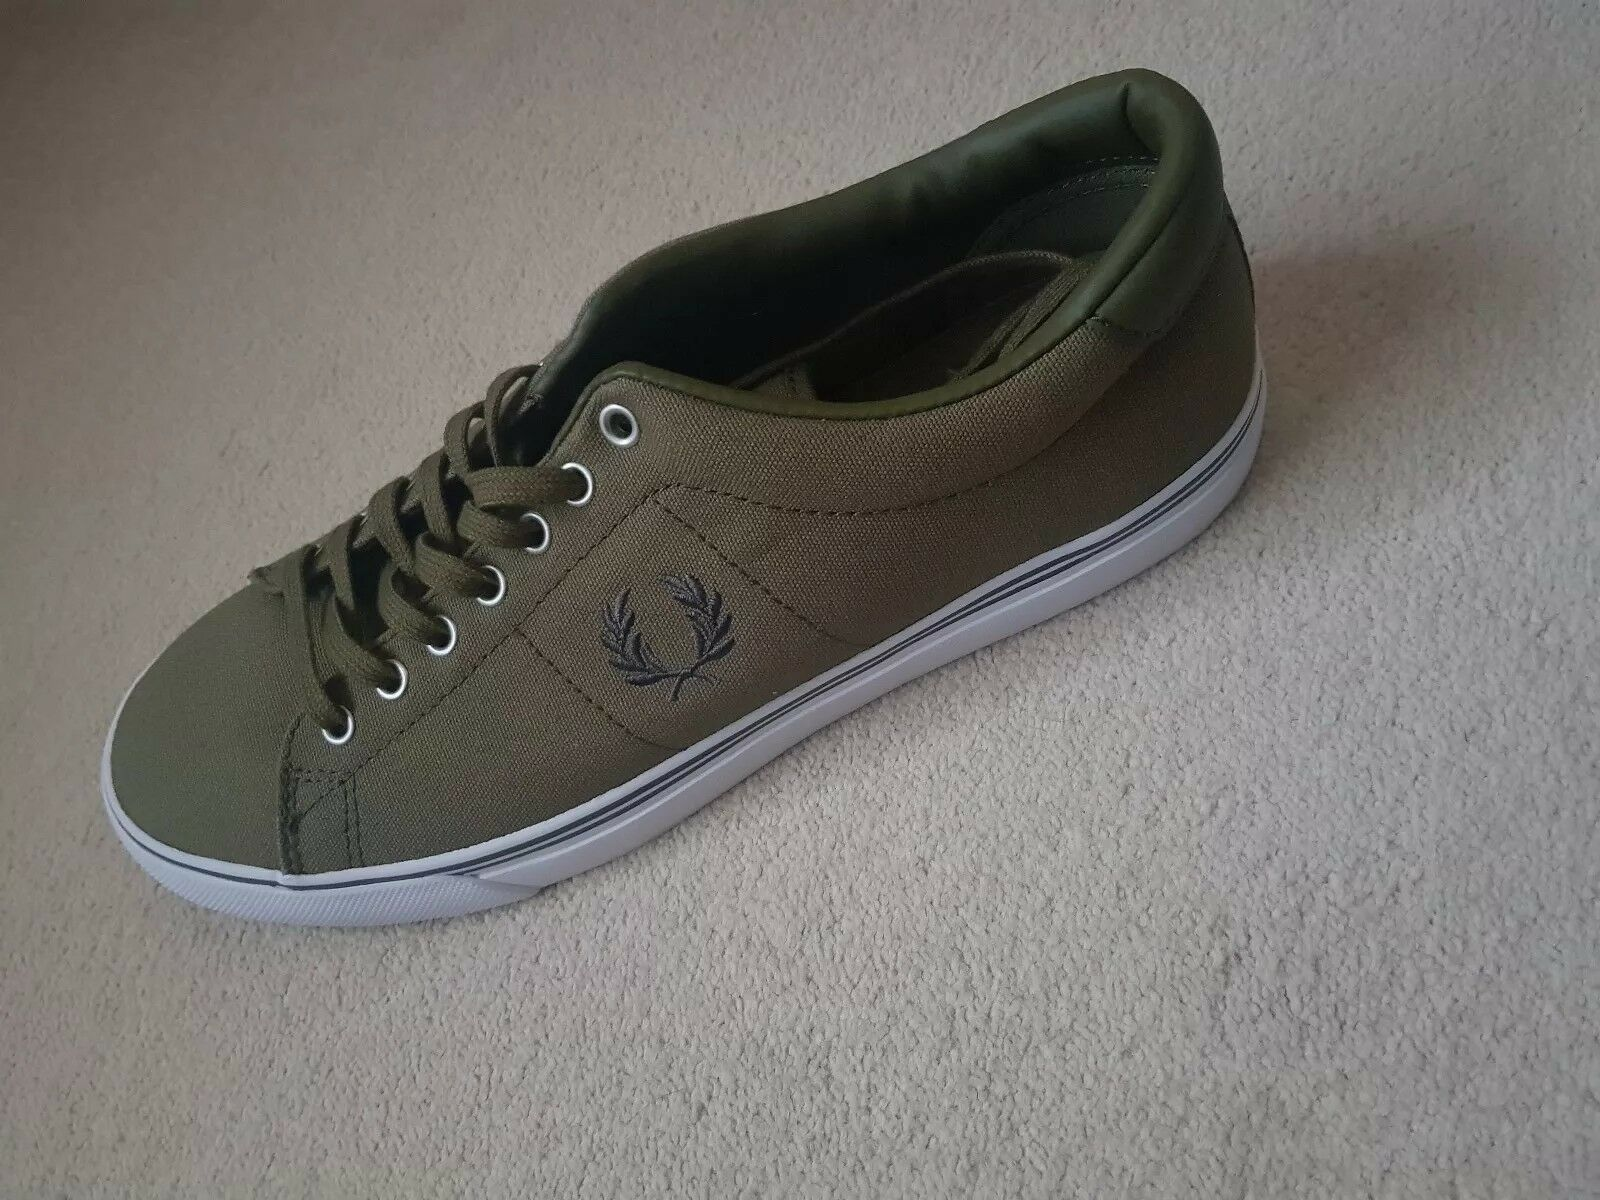 Fred Perry men's casual canvas shoes - khaki, size 8 uk.